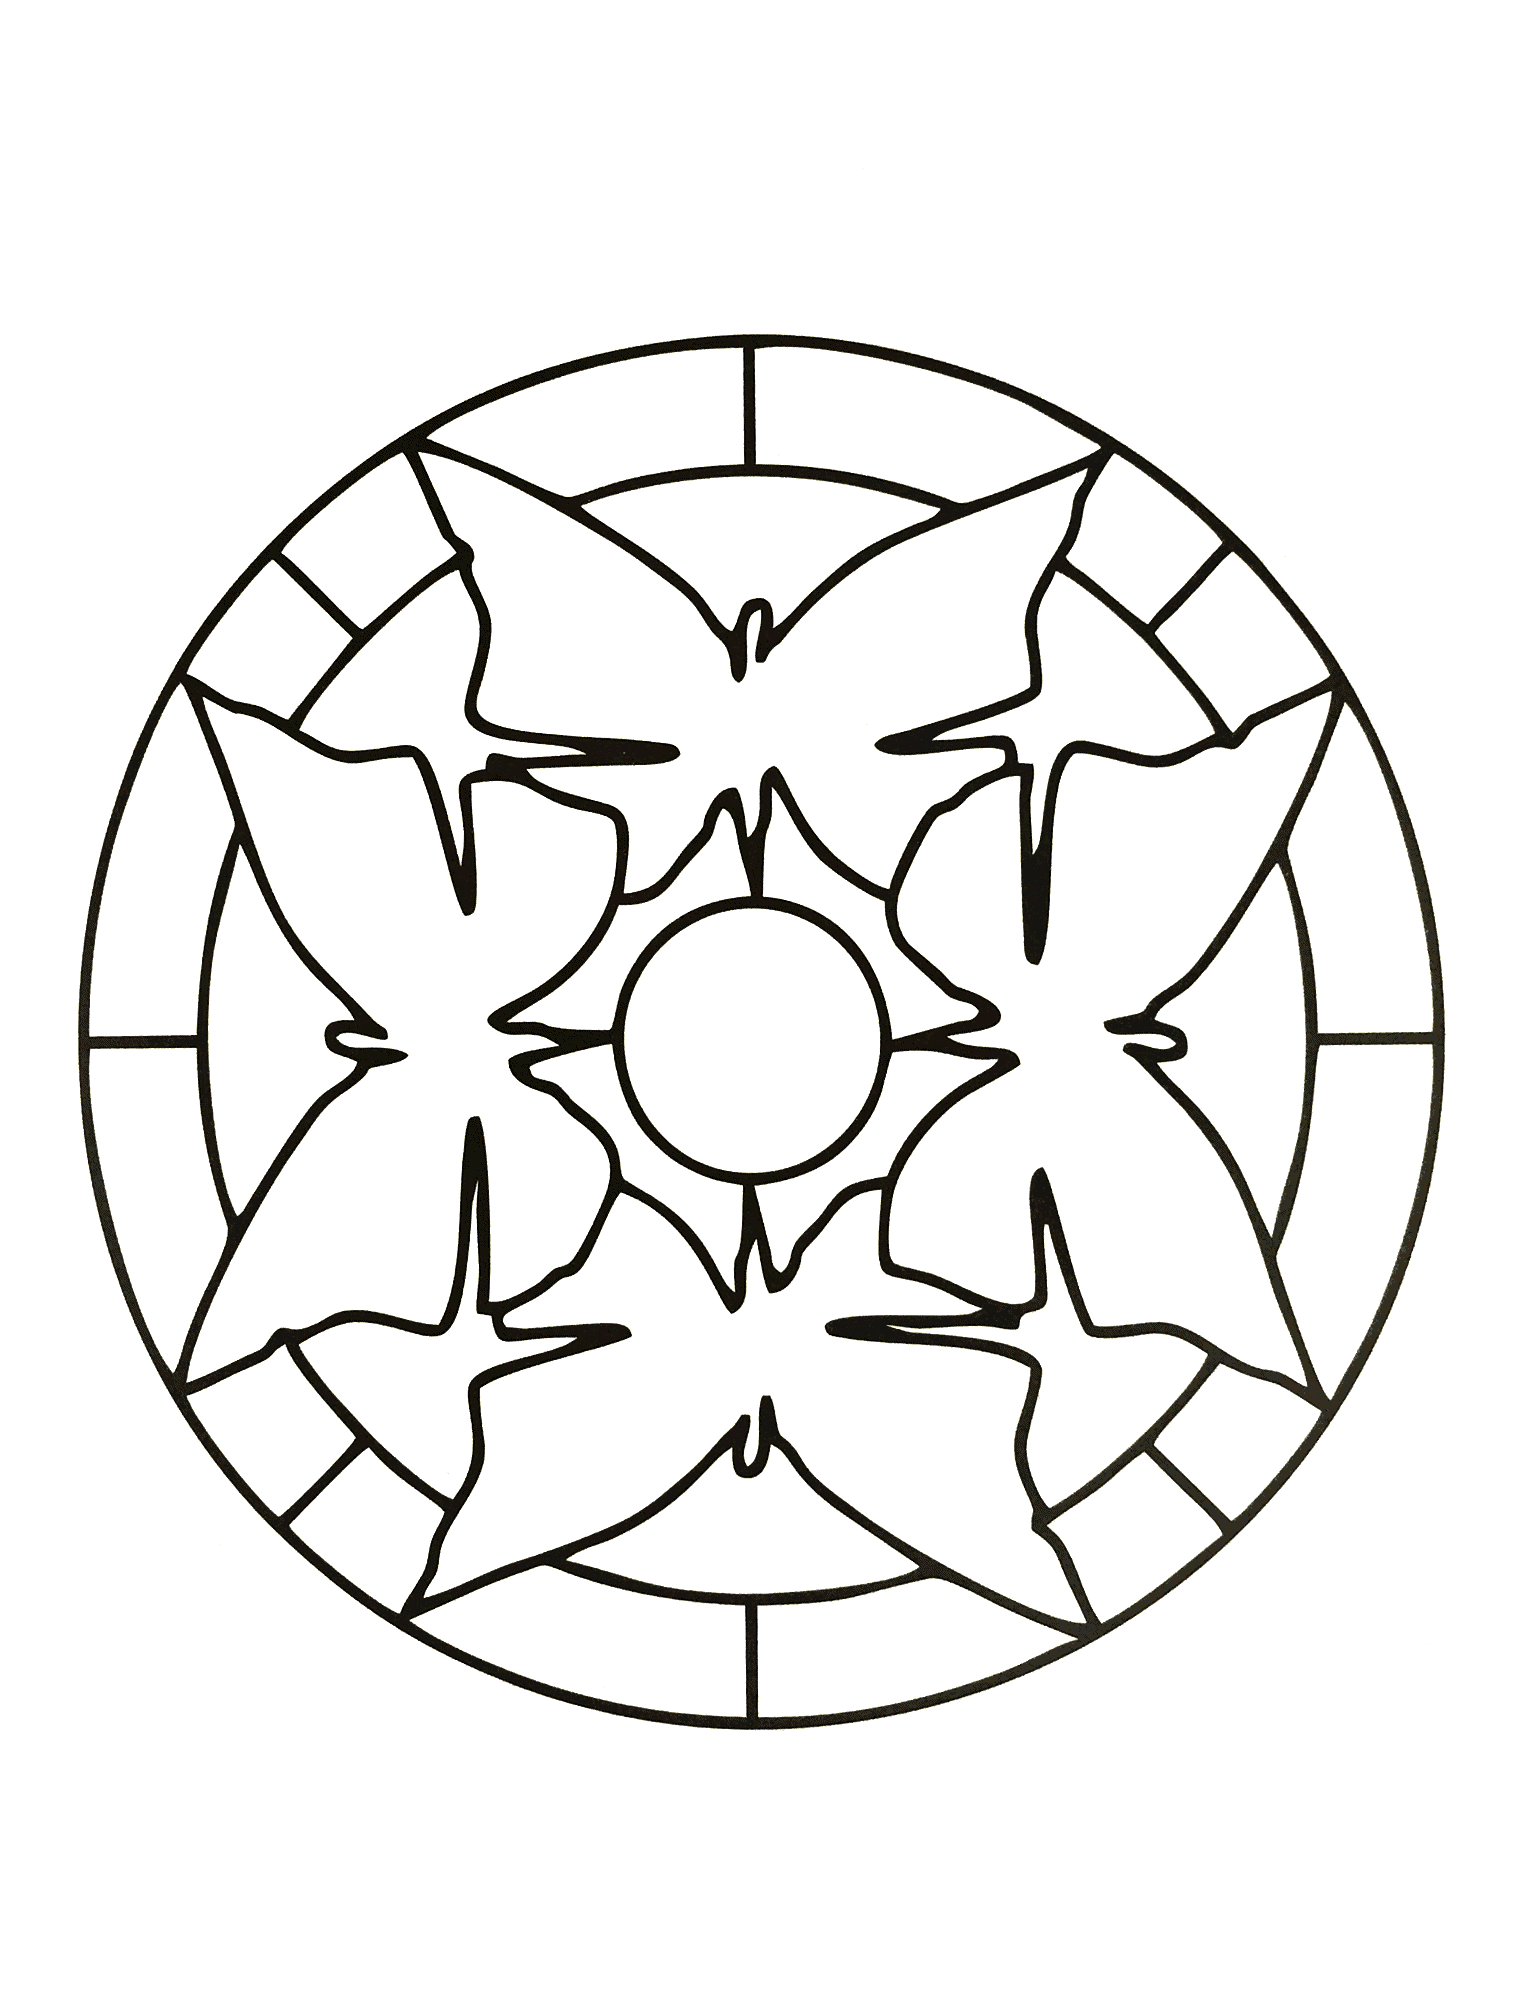 1517x1996 In These Pages, We Offer You Easy Mandala Coloring Pages For Kids